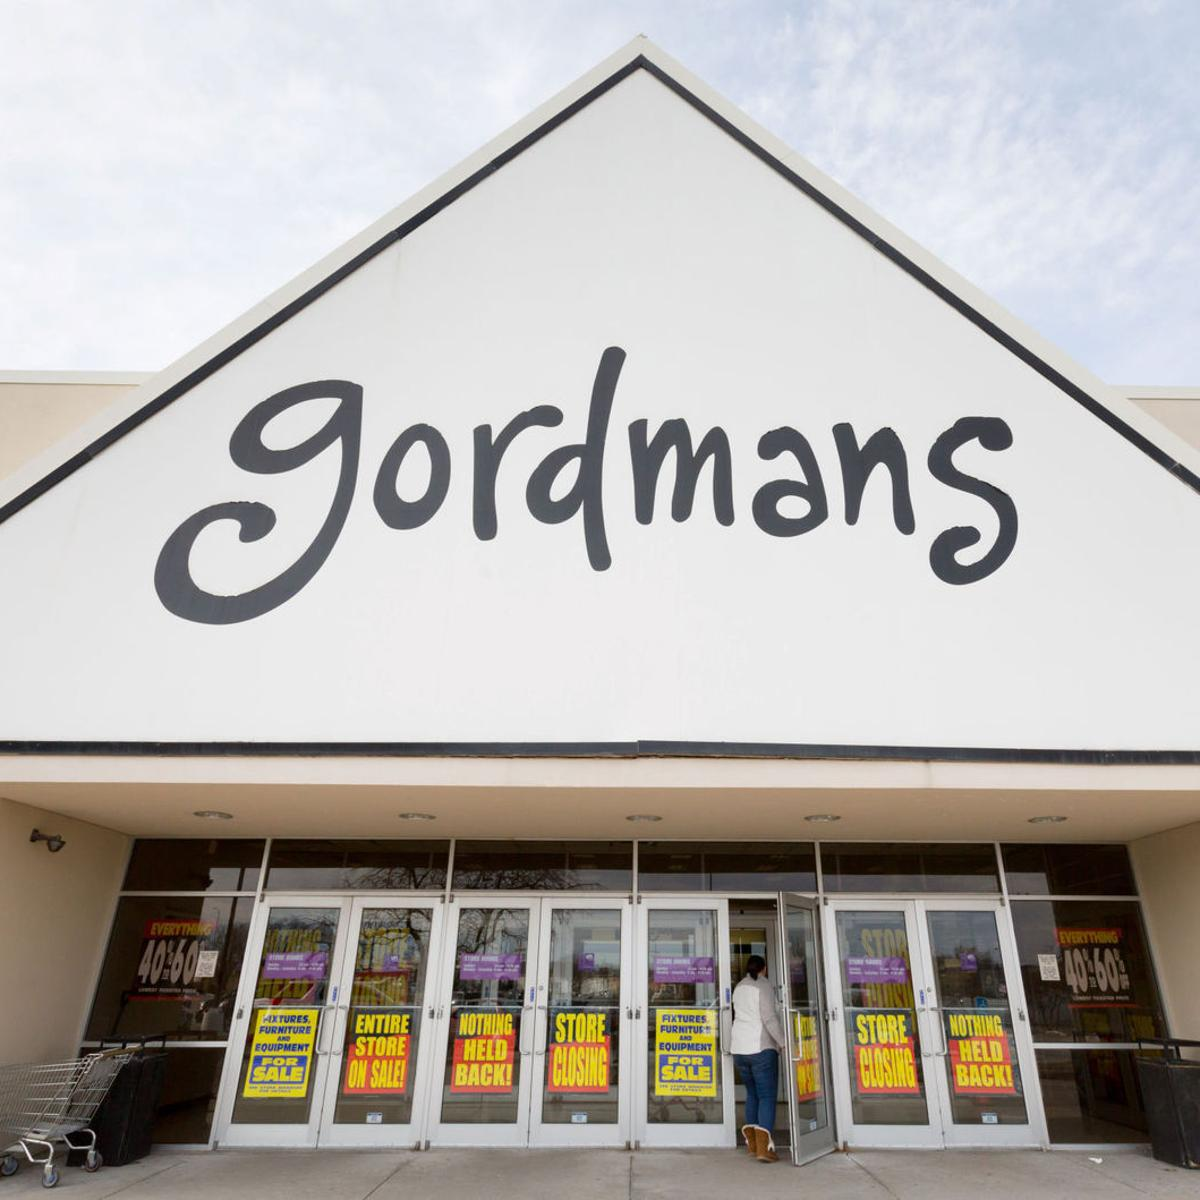 What's next for Gordmans? Could be reorganization, a sale or